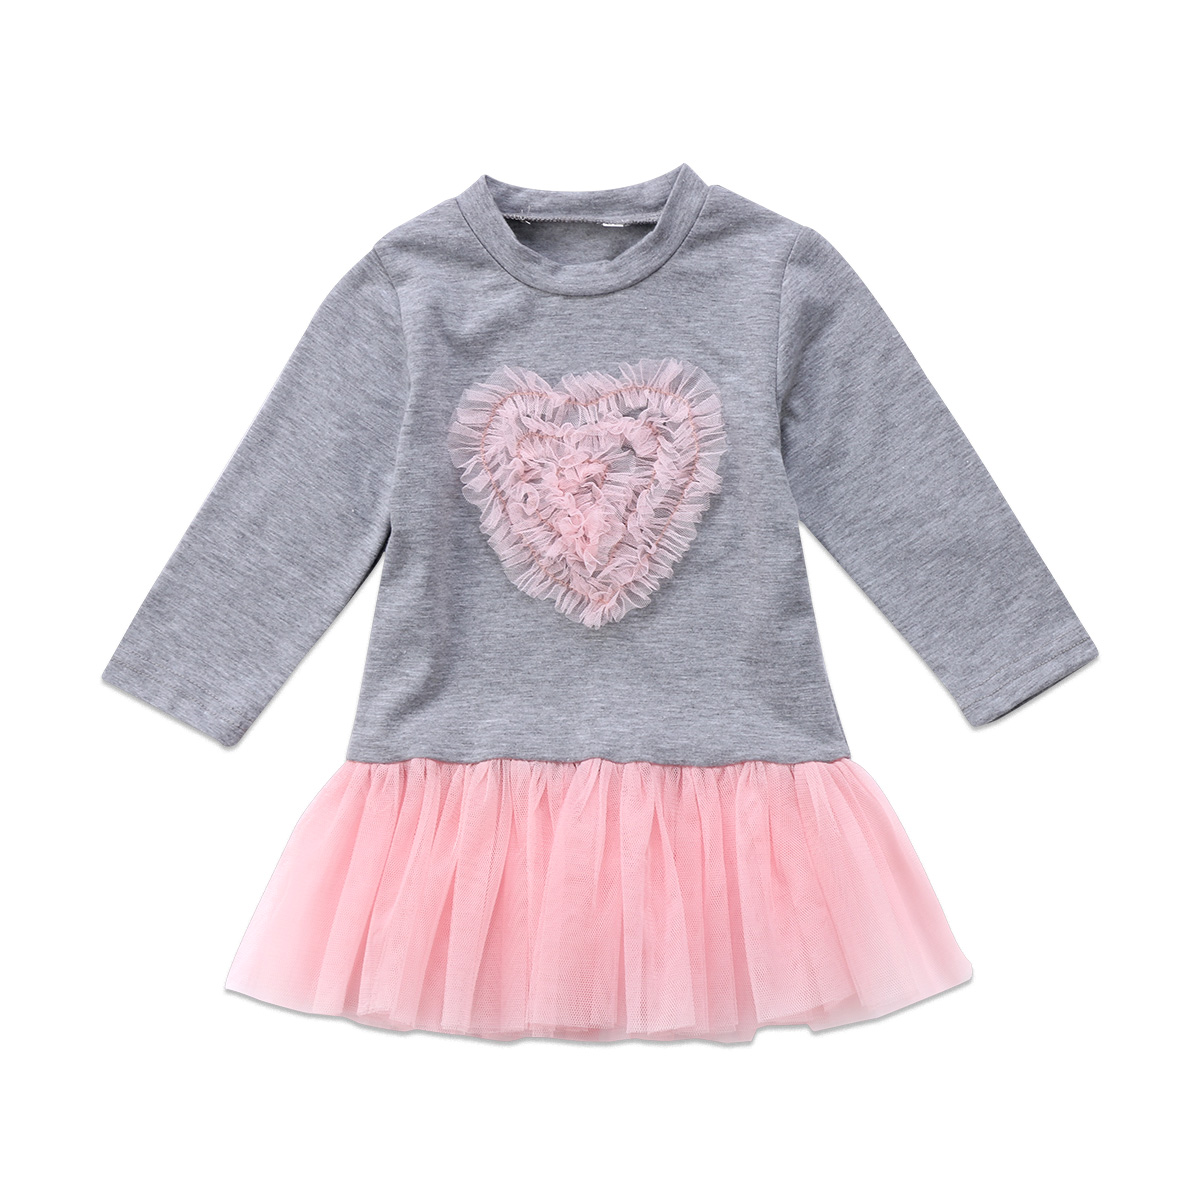 Toddler Kids Baby Girl Dress Autumn Long Sleeve Lace Heart Round Neck Dresses Patchwork Cute Gray Girls Clothing Outfit